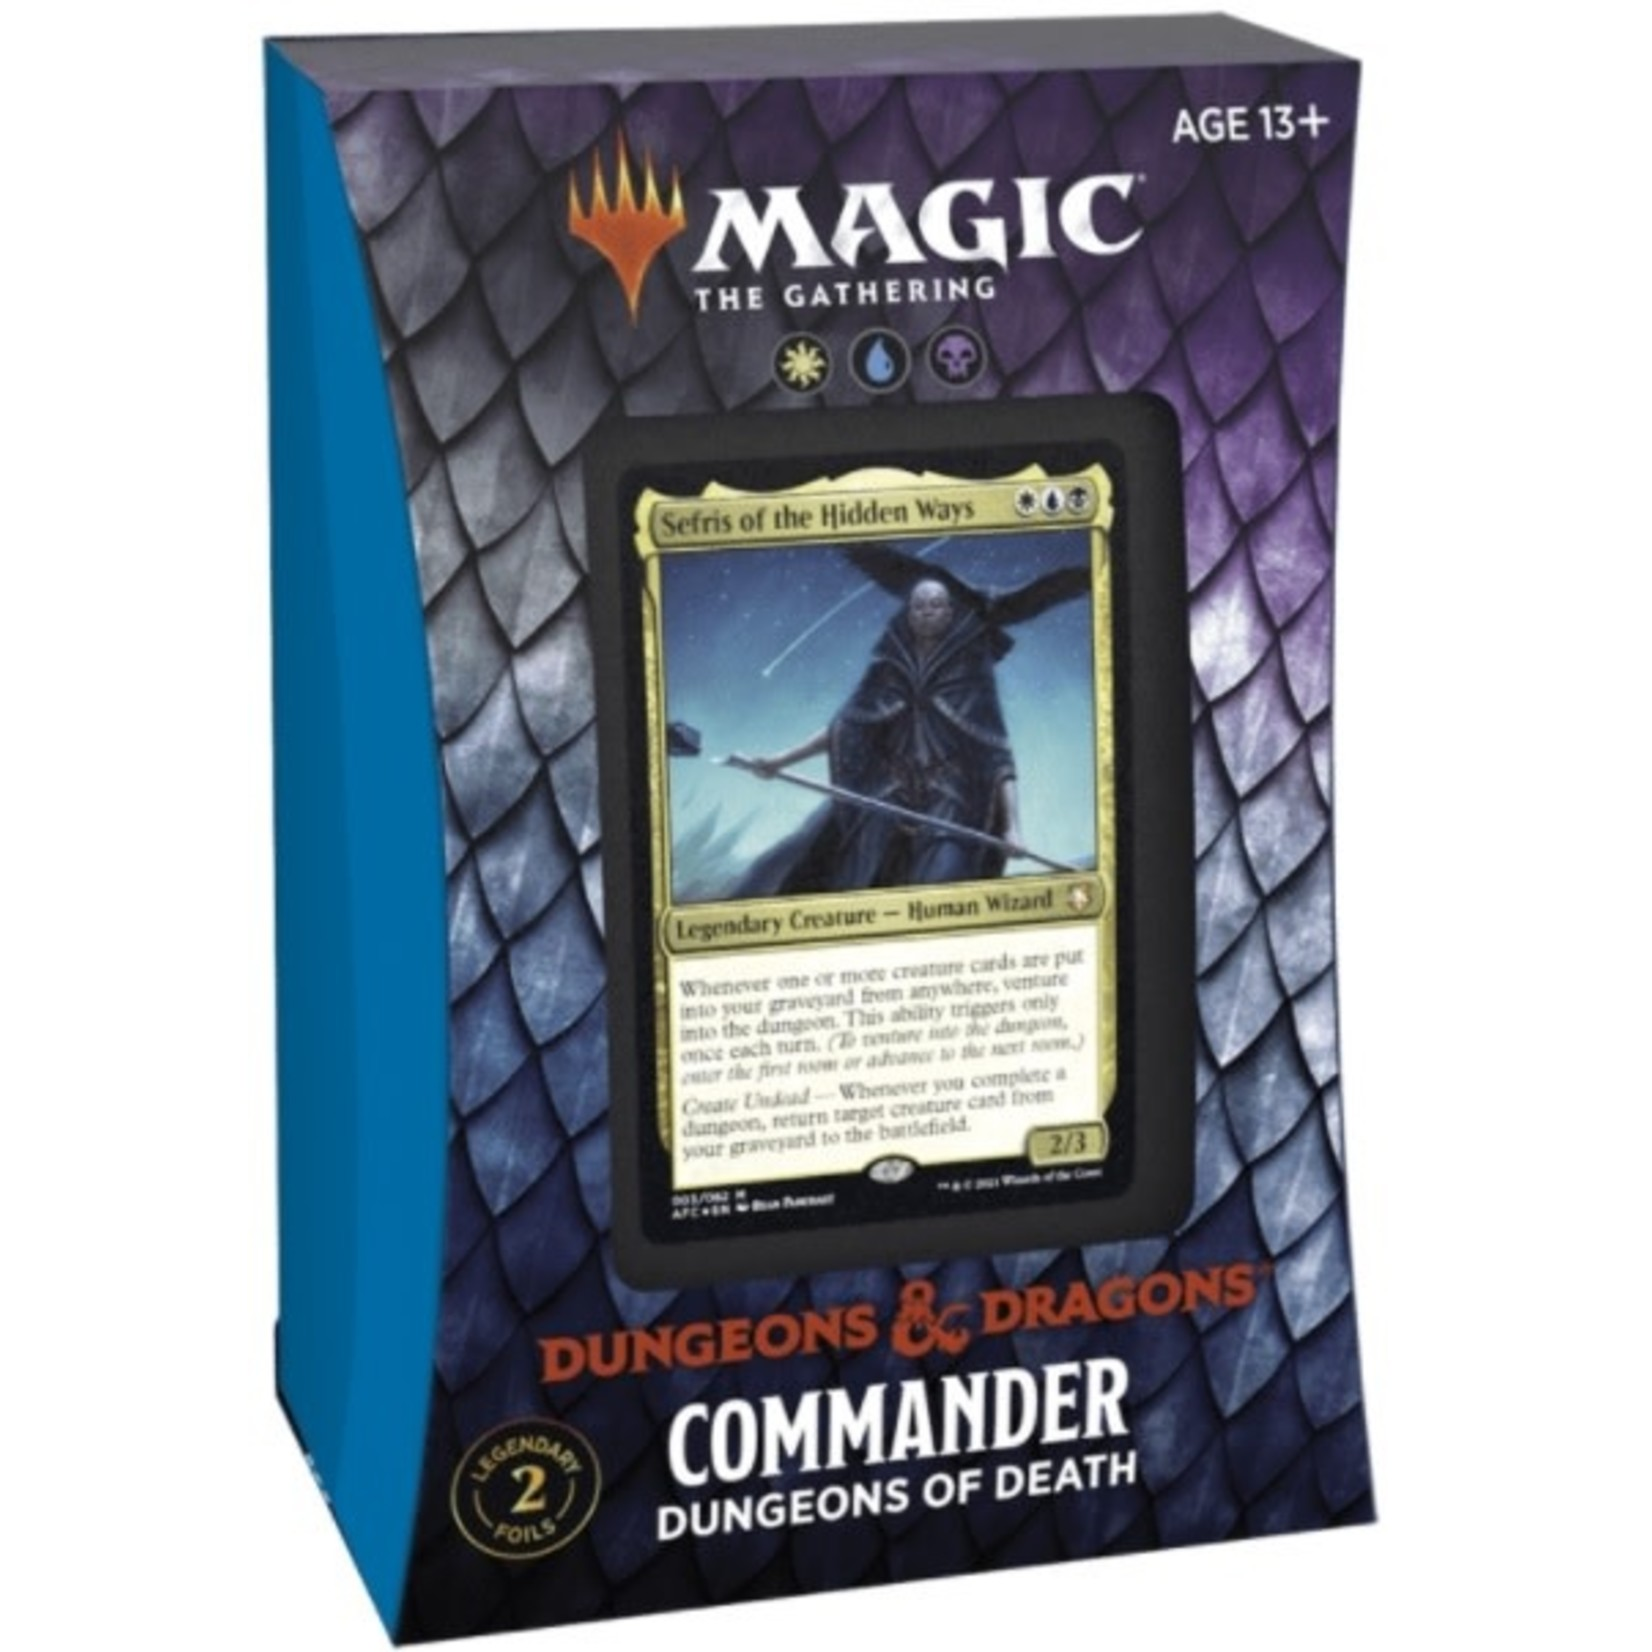 Magic The Gathering Magic The Gathering D&D Commander Dungeons of Death